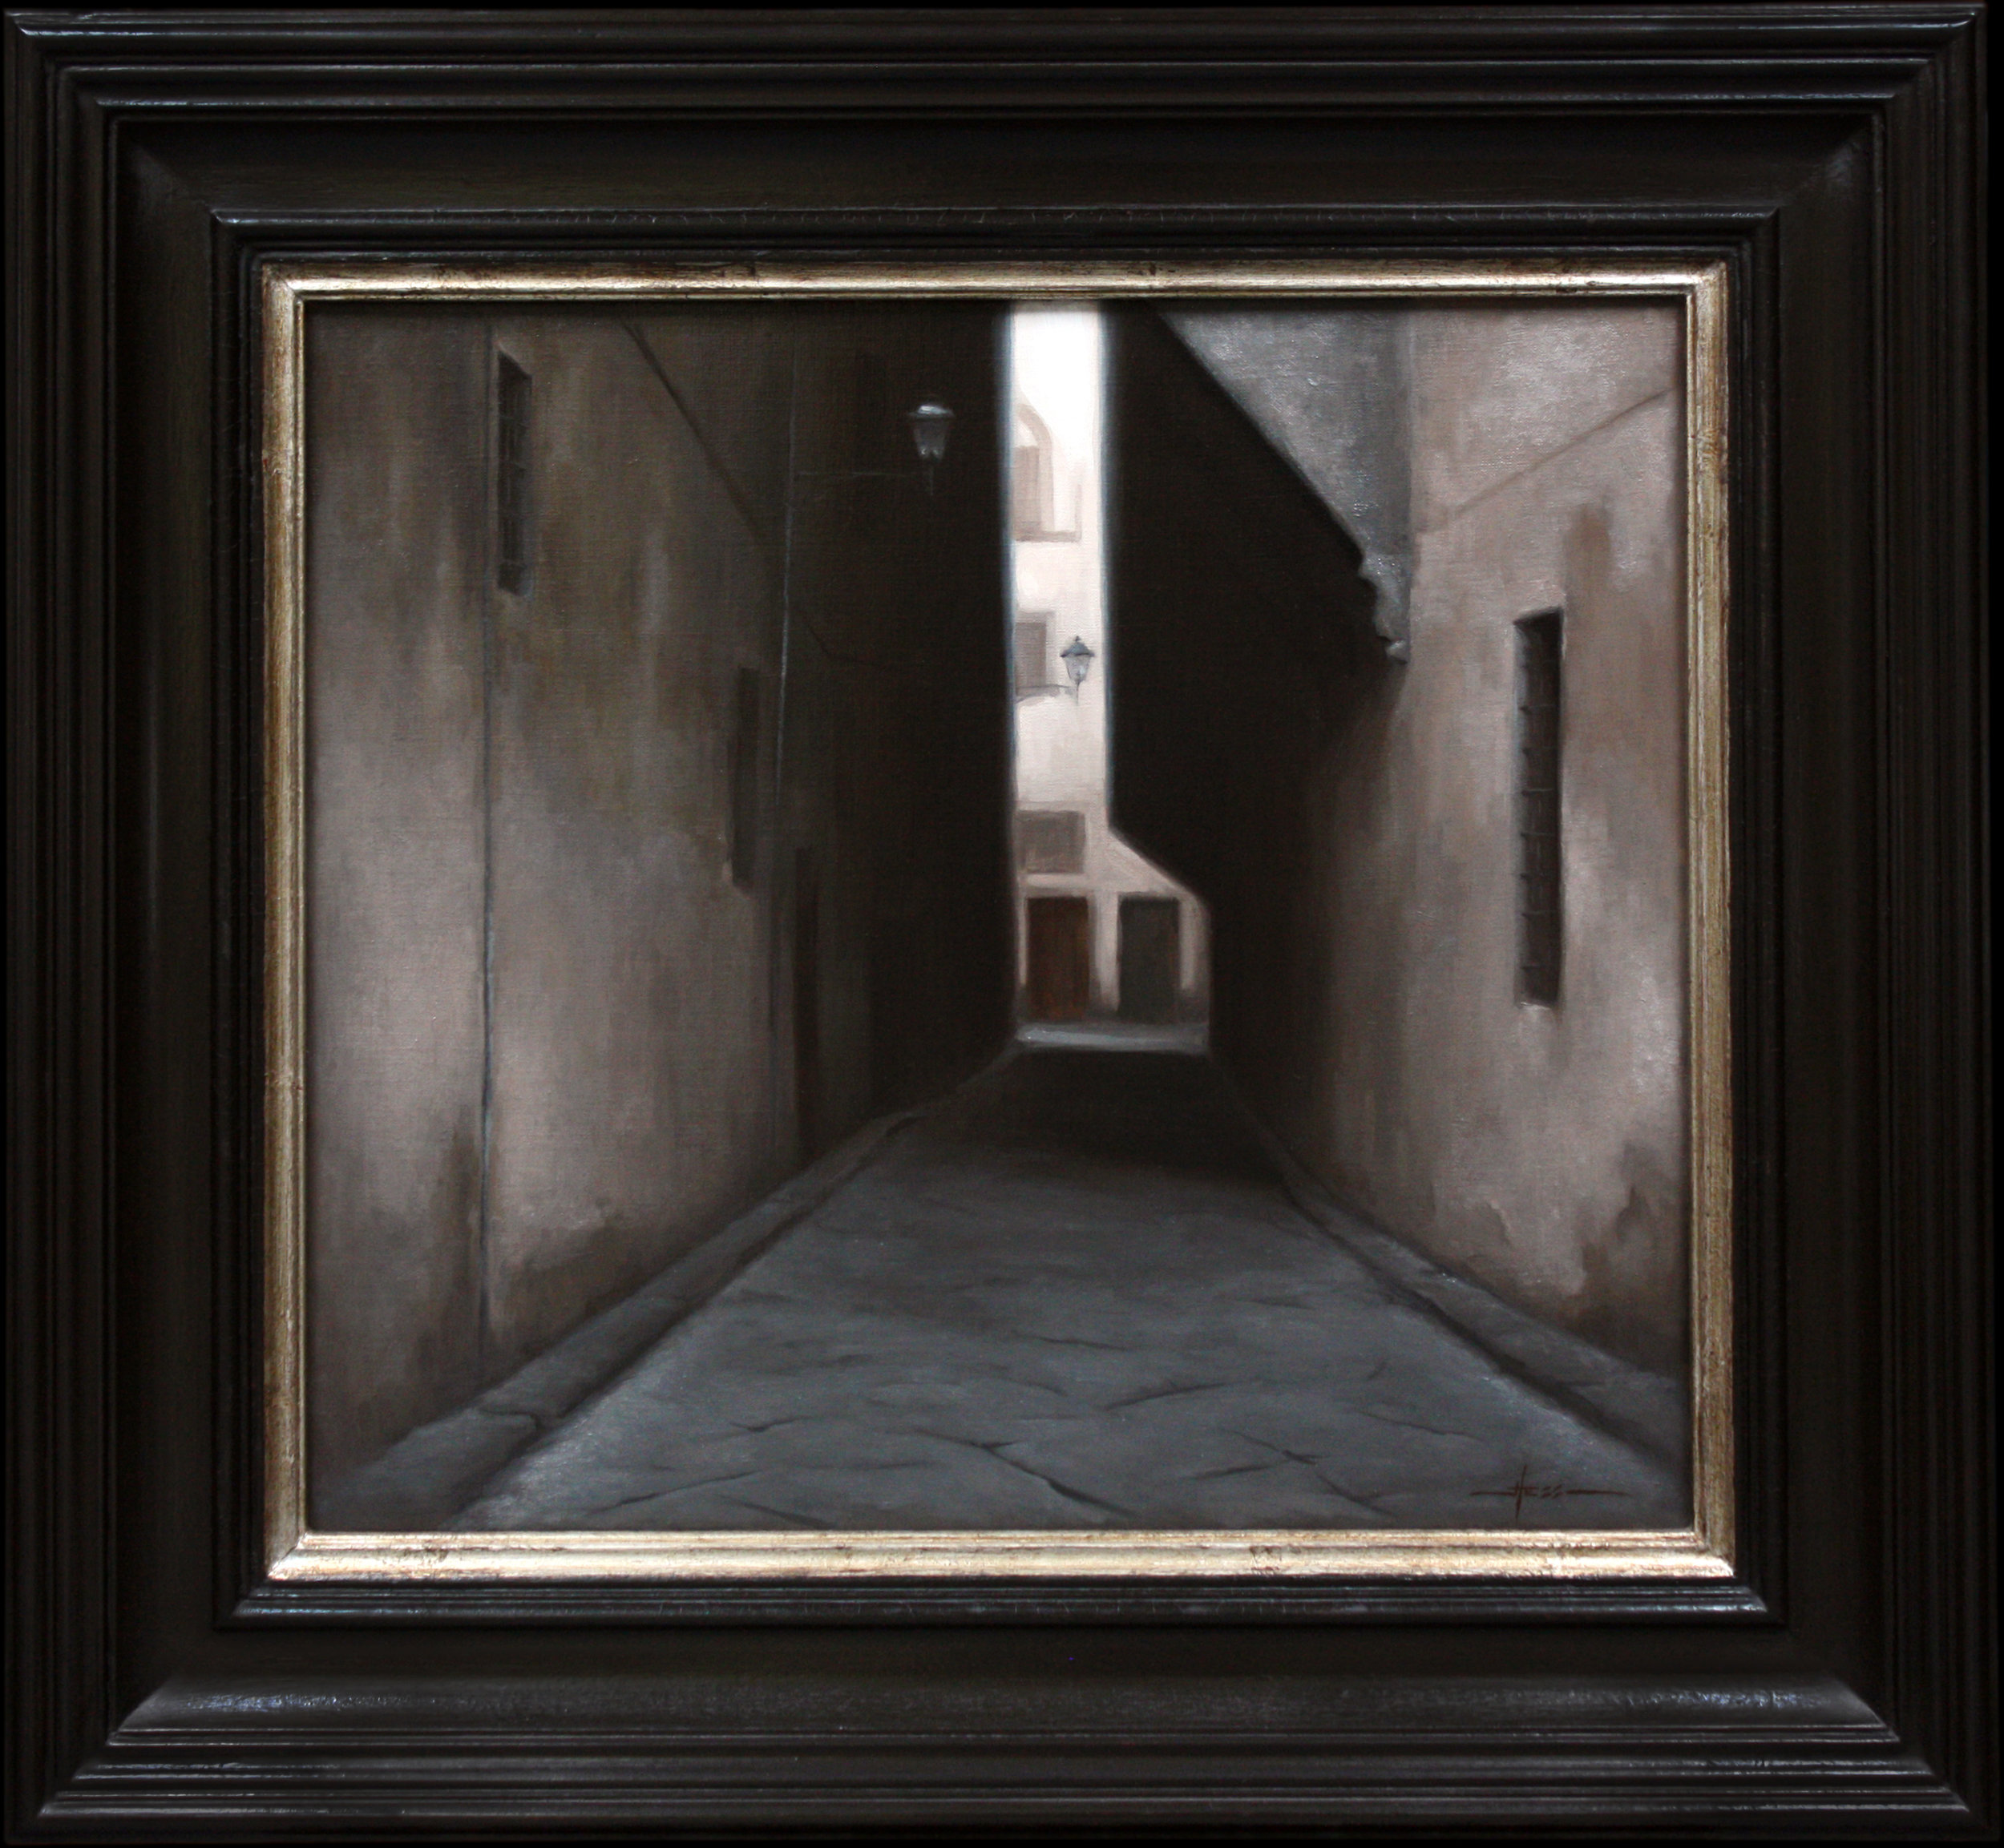 Via delle Brache, 130 years after Sargent (Frame).jpg